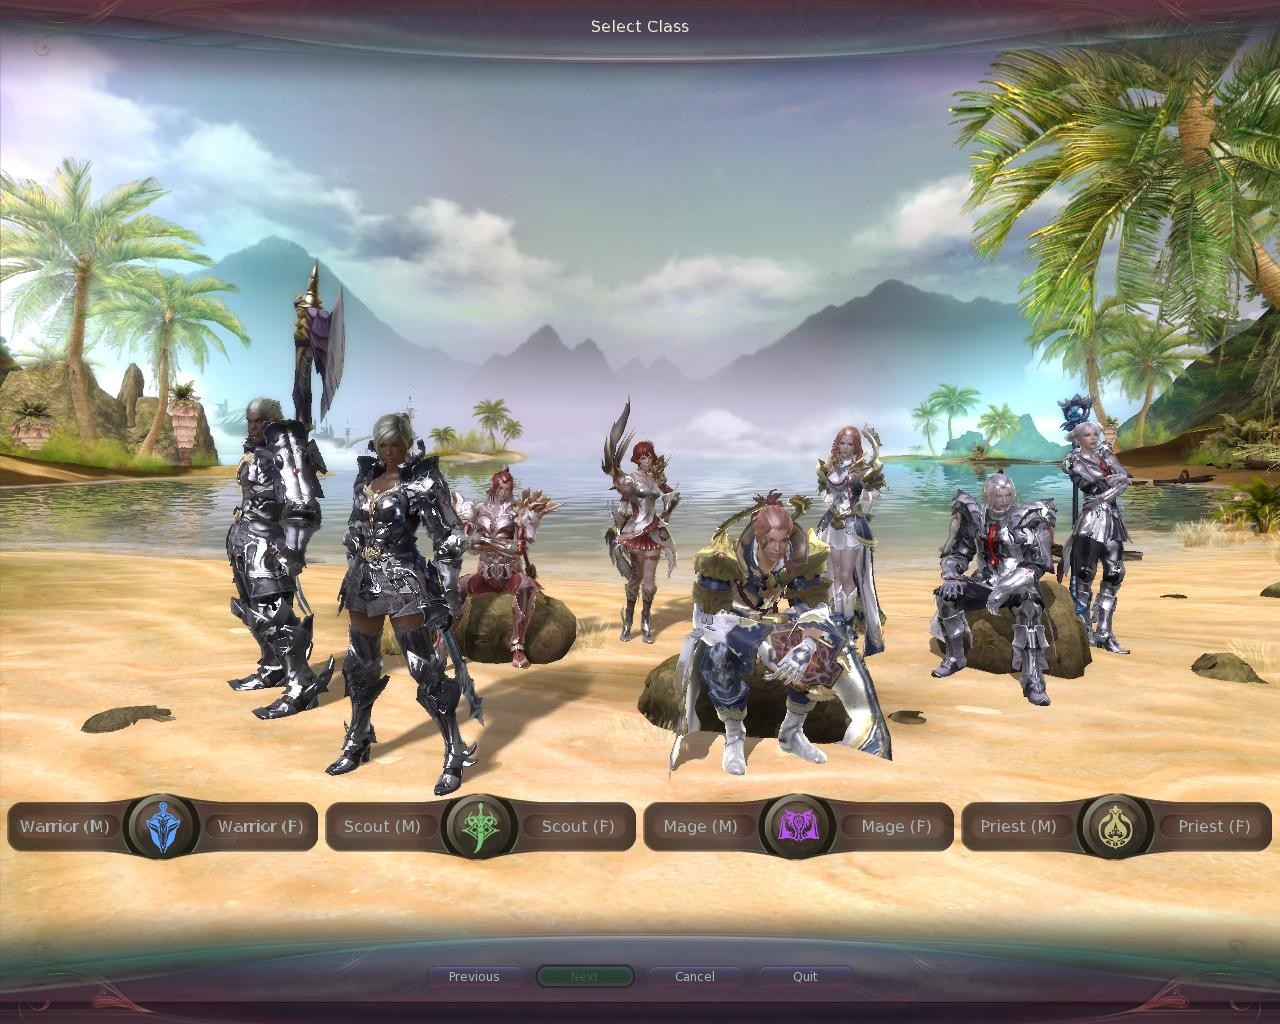 Aion - Class selection for Elyos faction